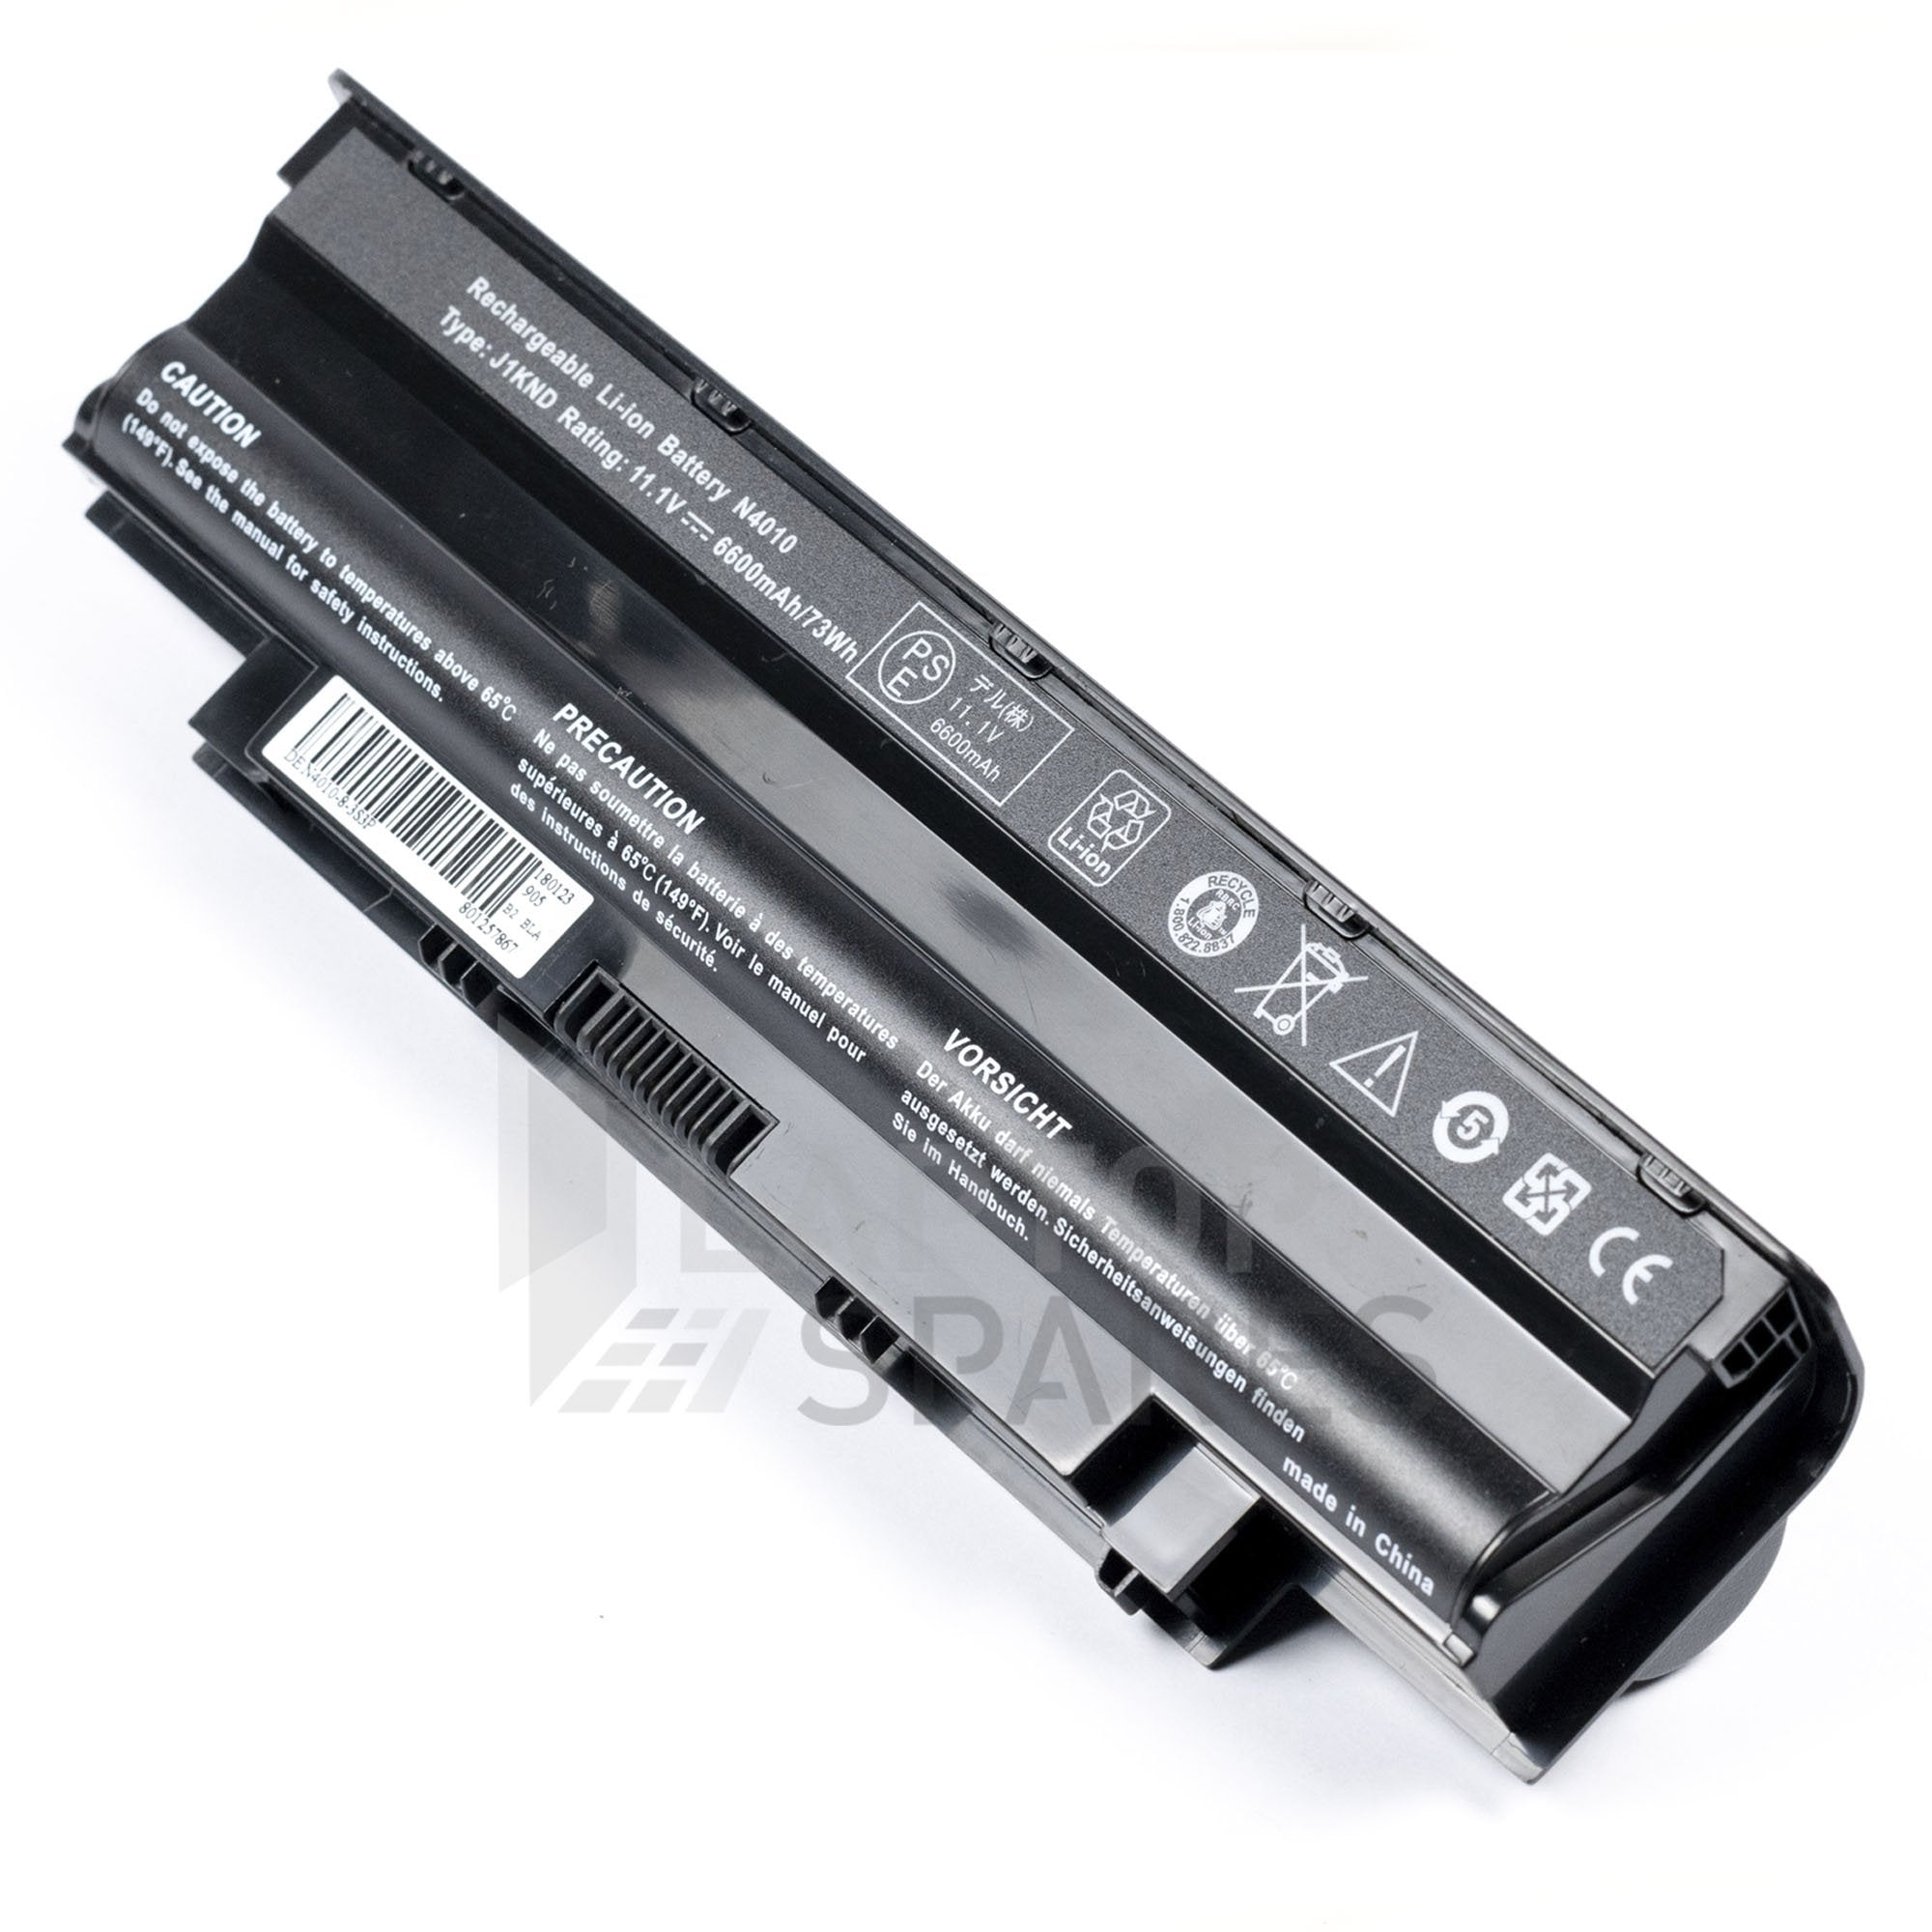 Dell Inspiron 15R N5010D-258 6600mAh 9 Cell Battery